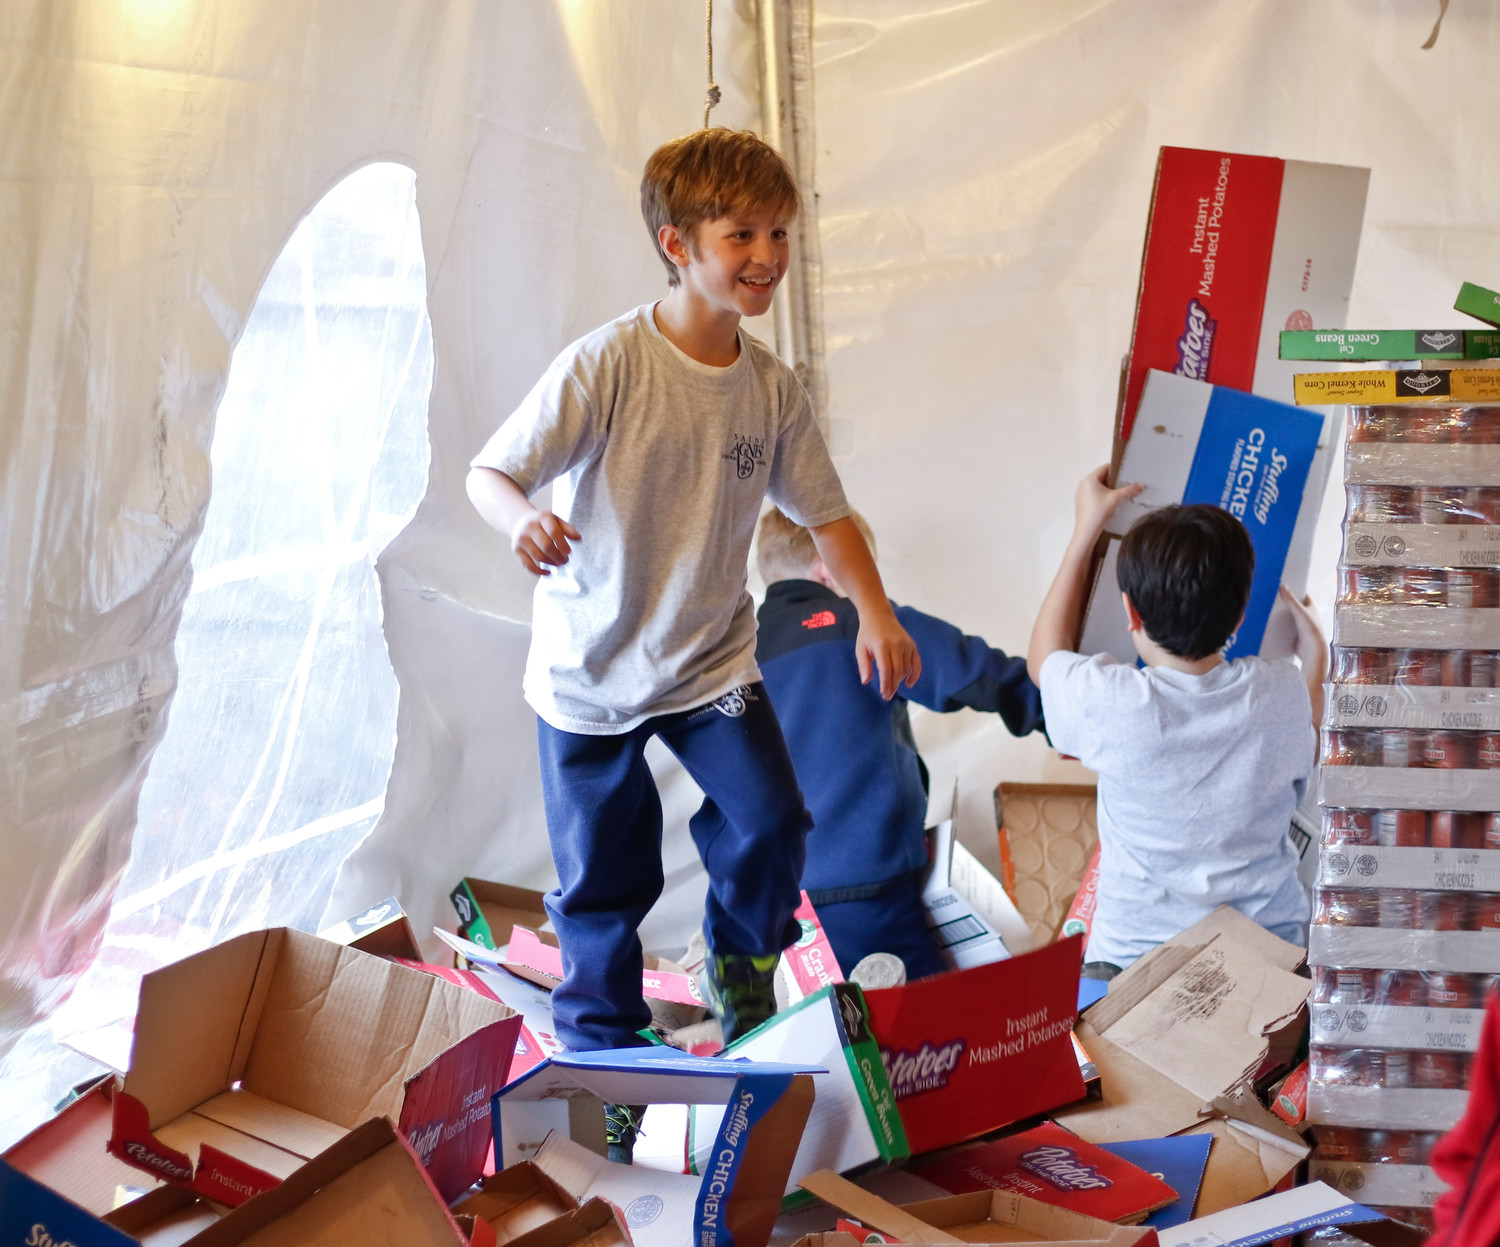 Thomas Lorenzo, 9, came up with a fun way to break down the empty boxes: jumping on them.